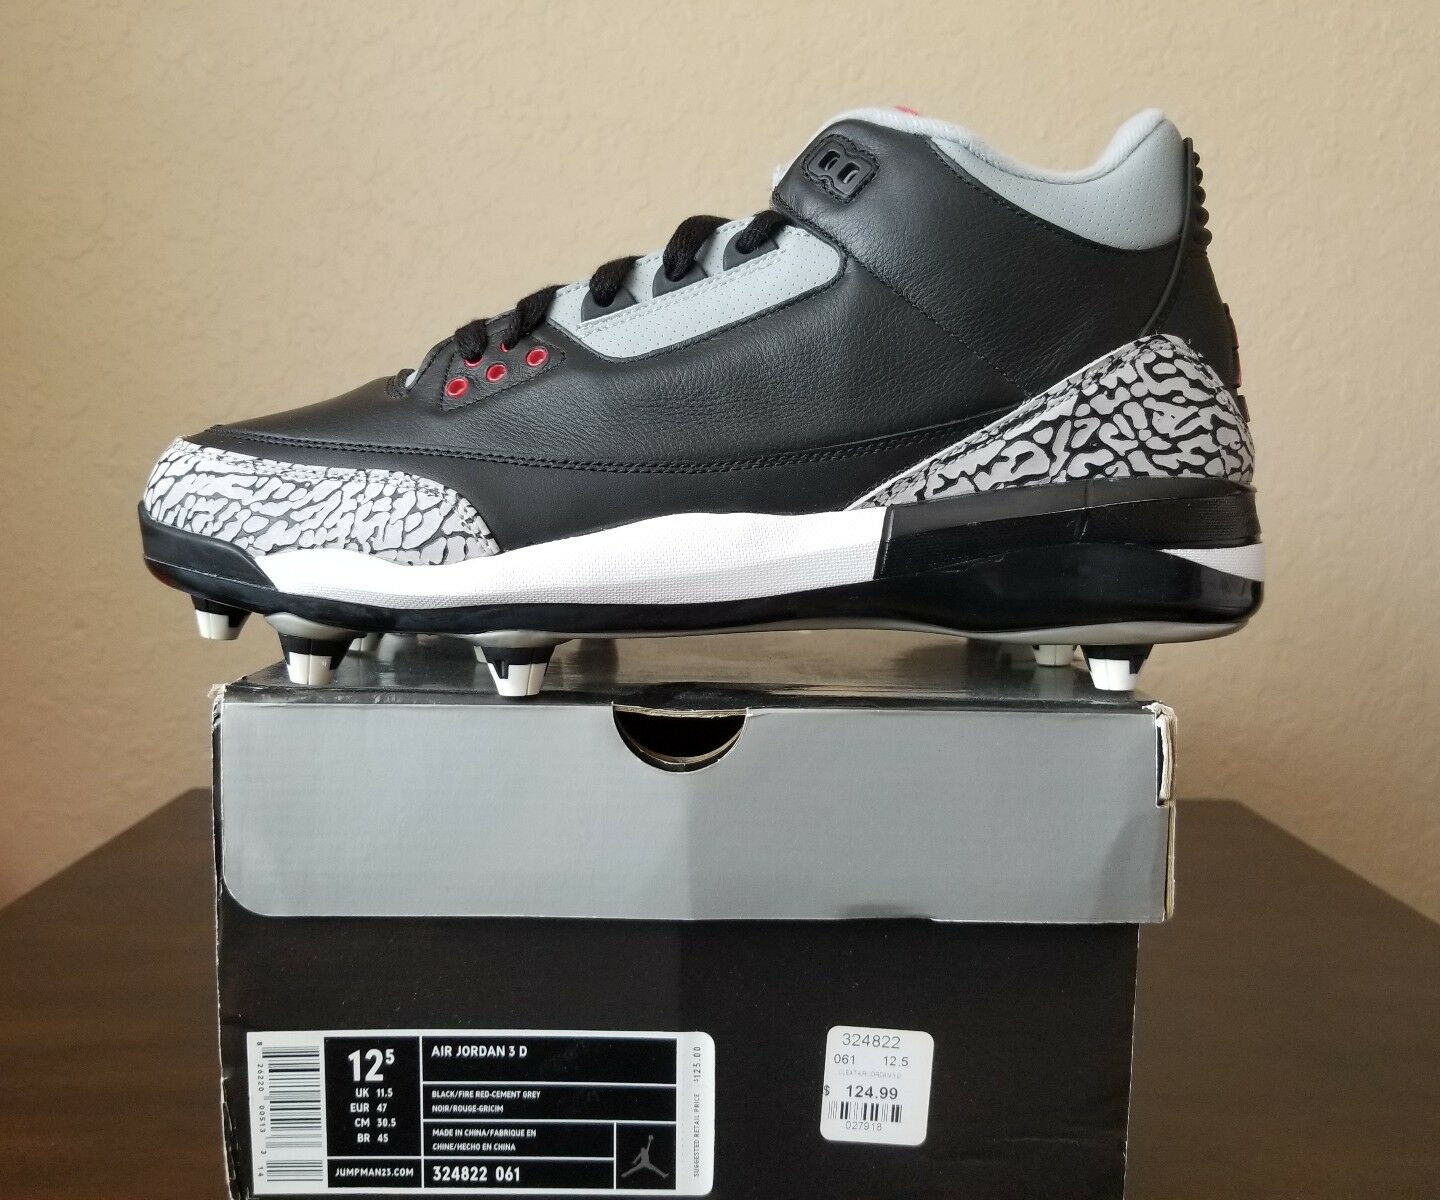 75115f3e82cd NEW IN BOX Nike Air Jordan III 3D 3D 3D Football Cleats Mens Size ...